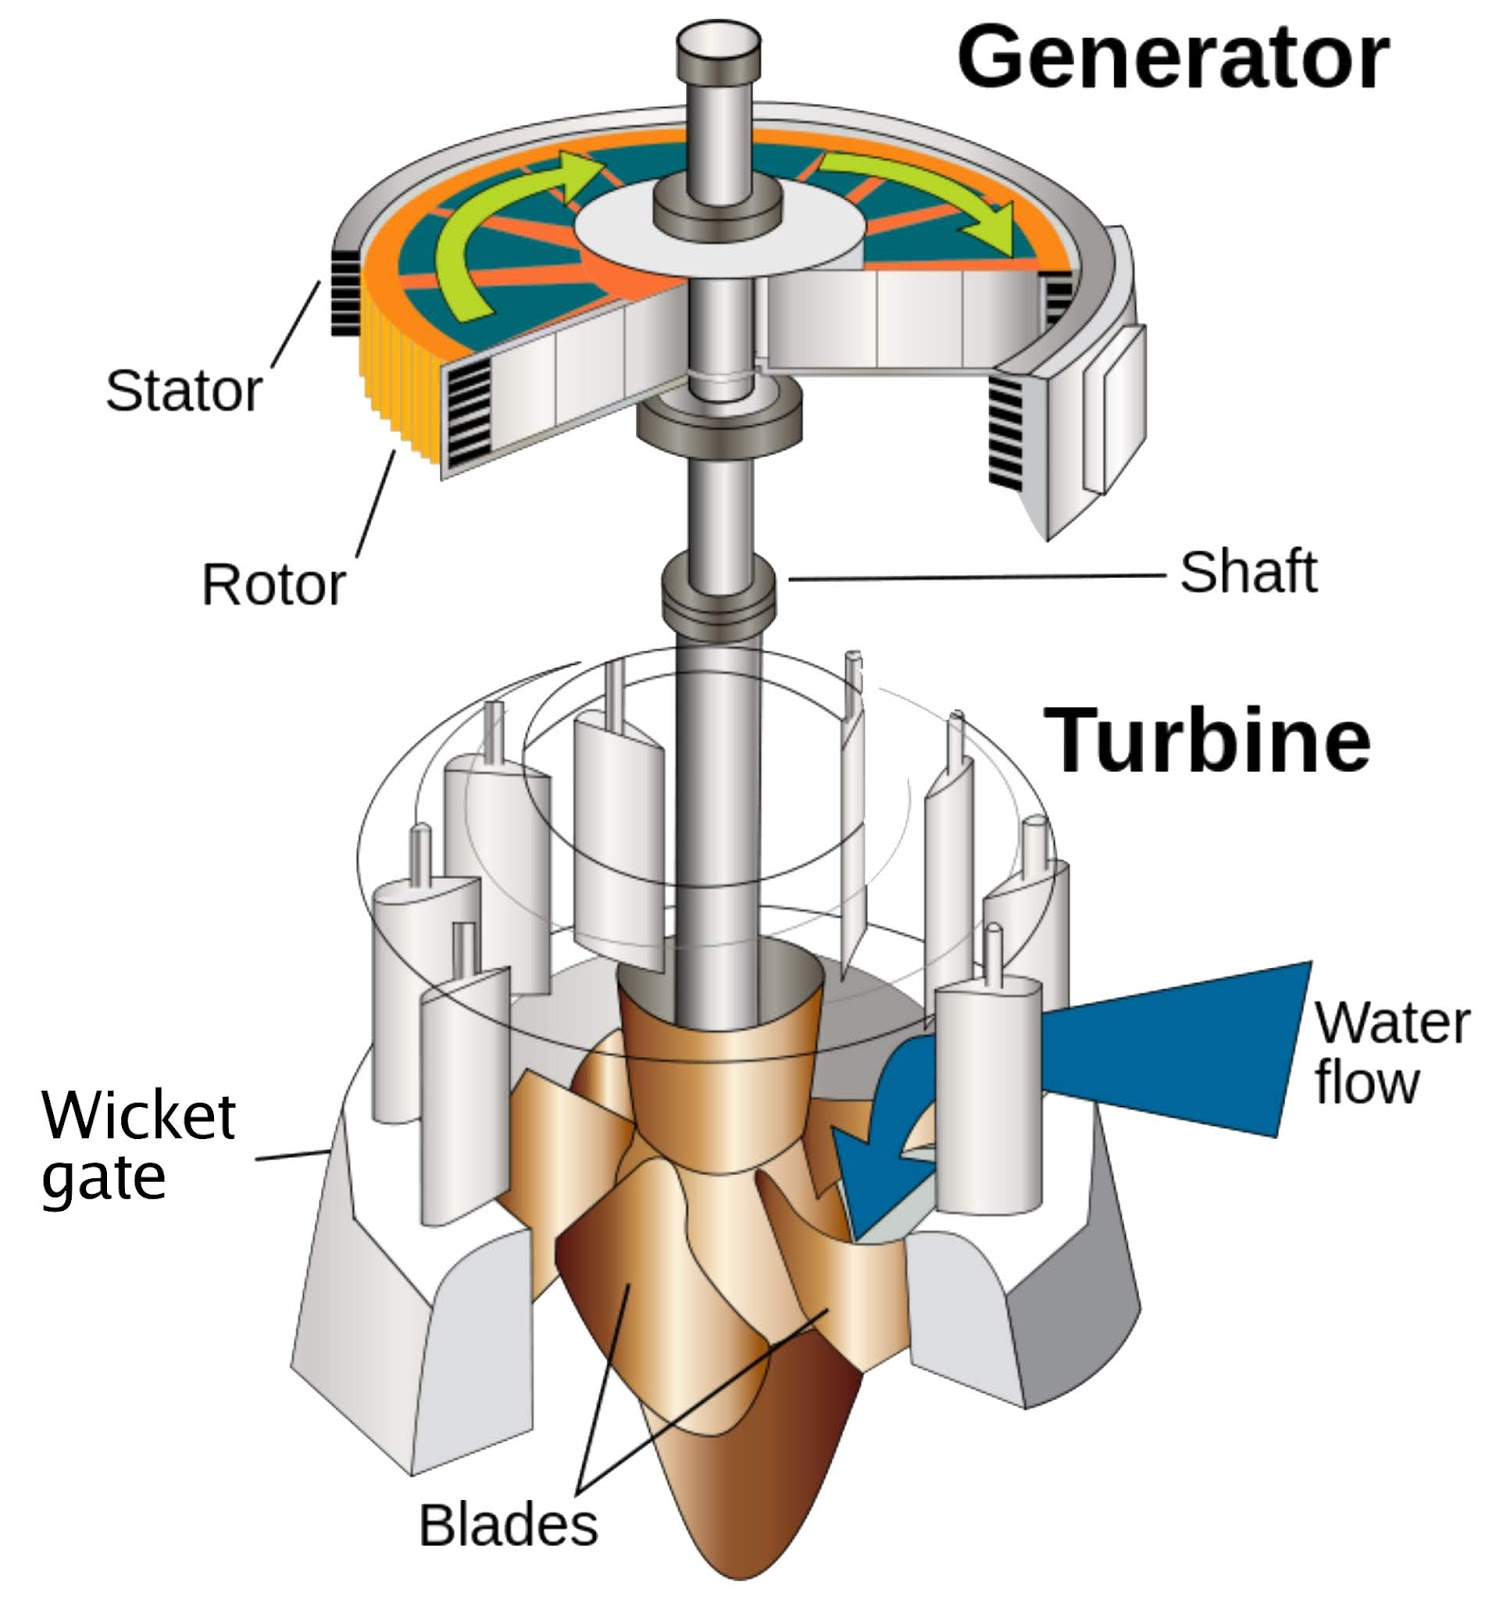 Reaction Turbine - Parts, Construction And Working